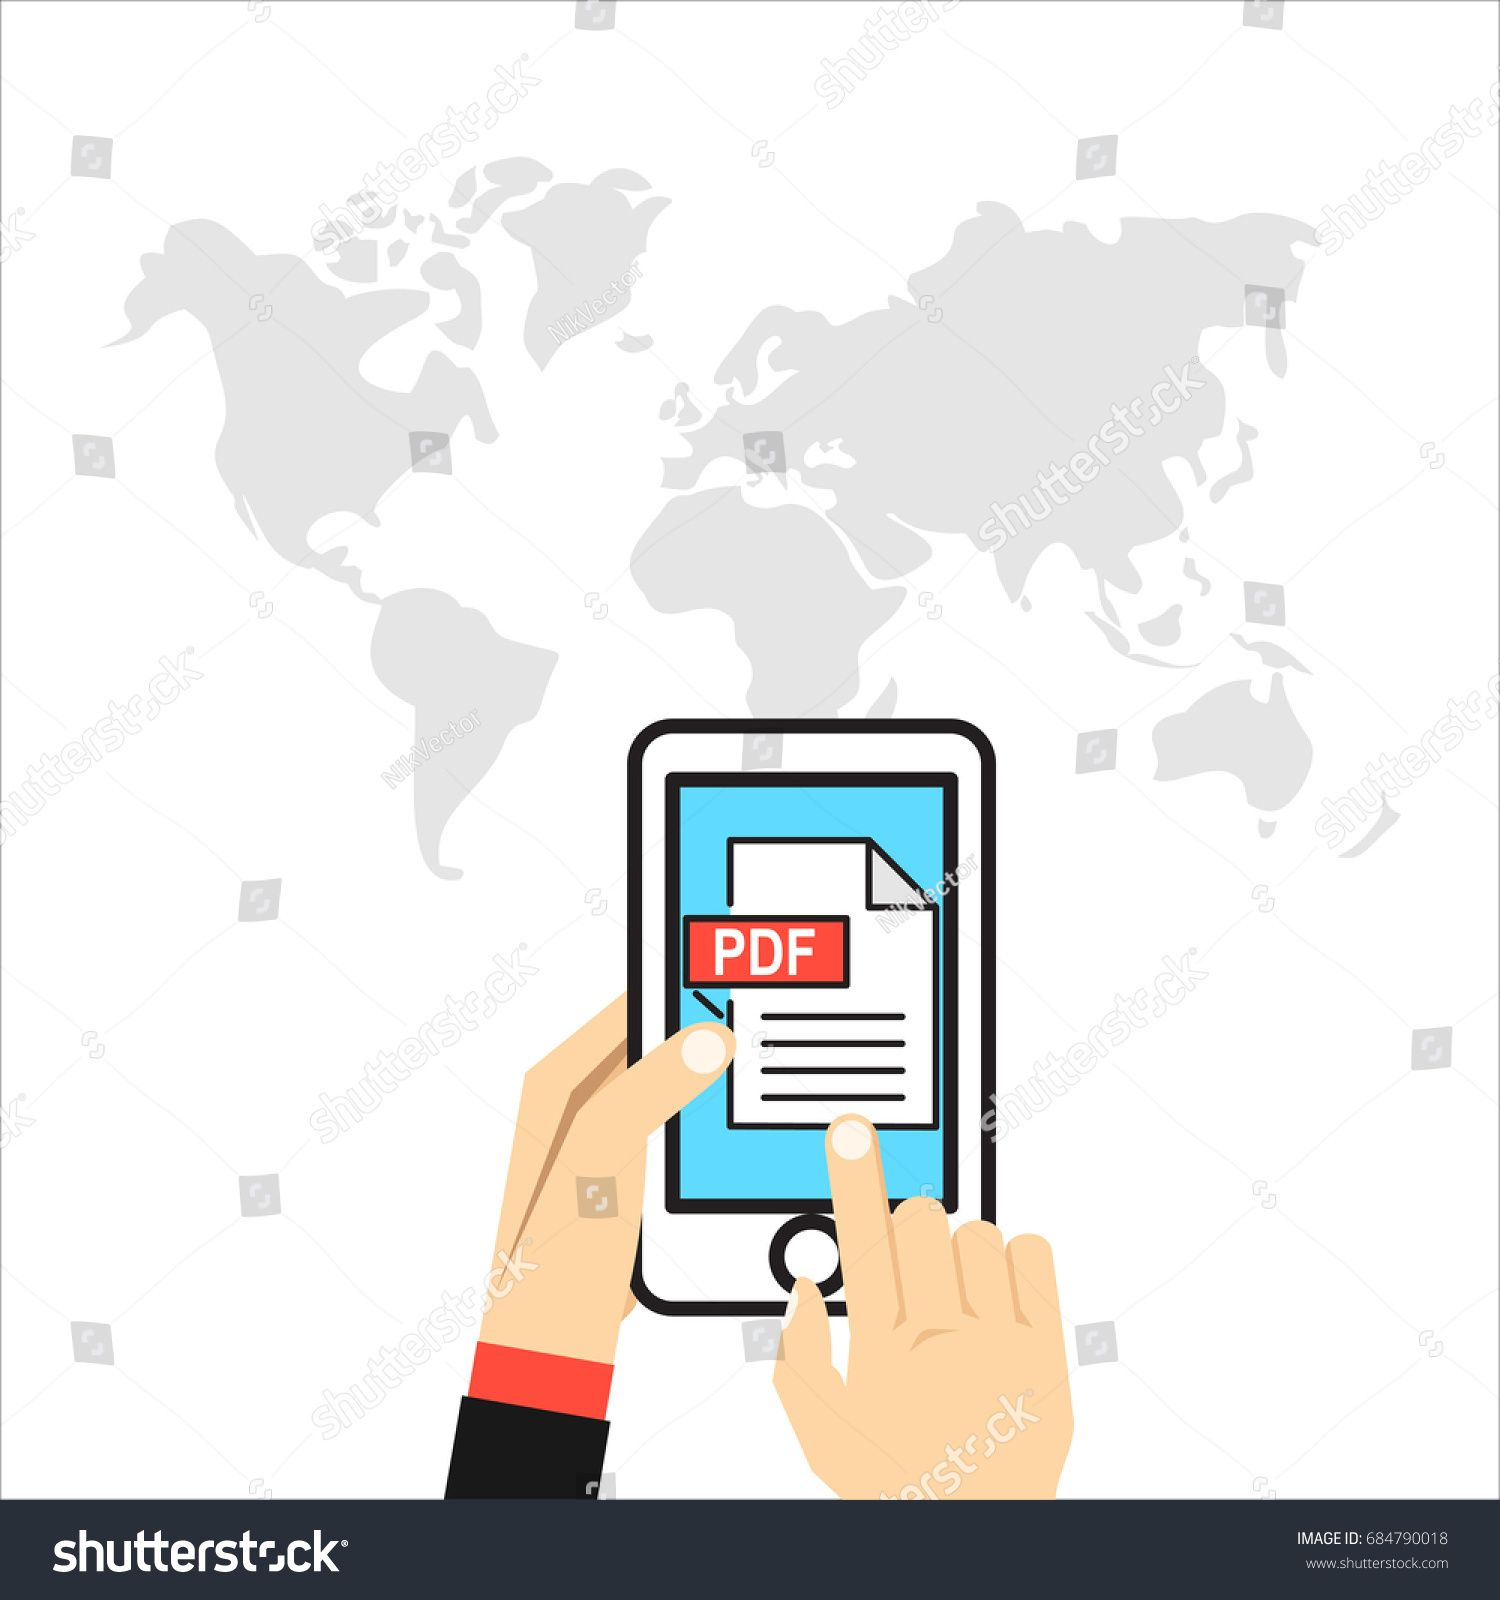 Pdf File On Smartphone Screen Hand Holds Phone Finger Touches Screen Read Download View Pdf On Mobile Devi In 2020 Ebook Design Social Media Design Graphics Ebook How to read pdf on mobile